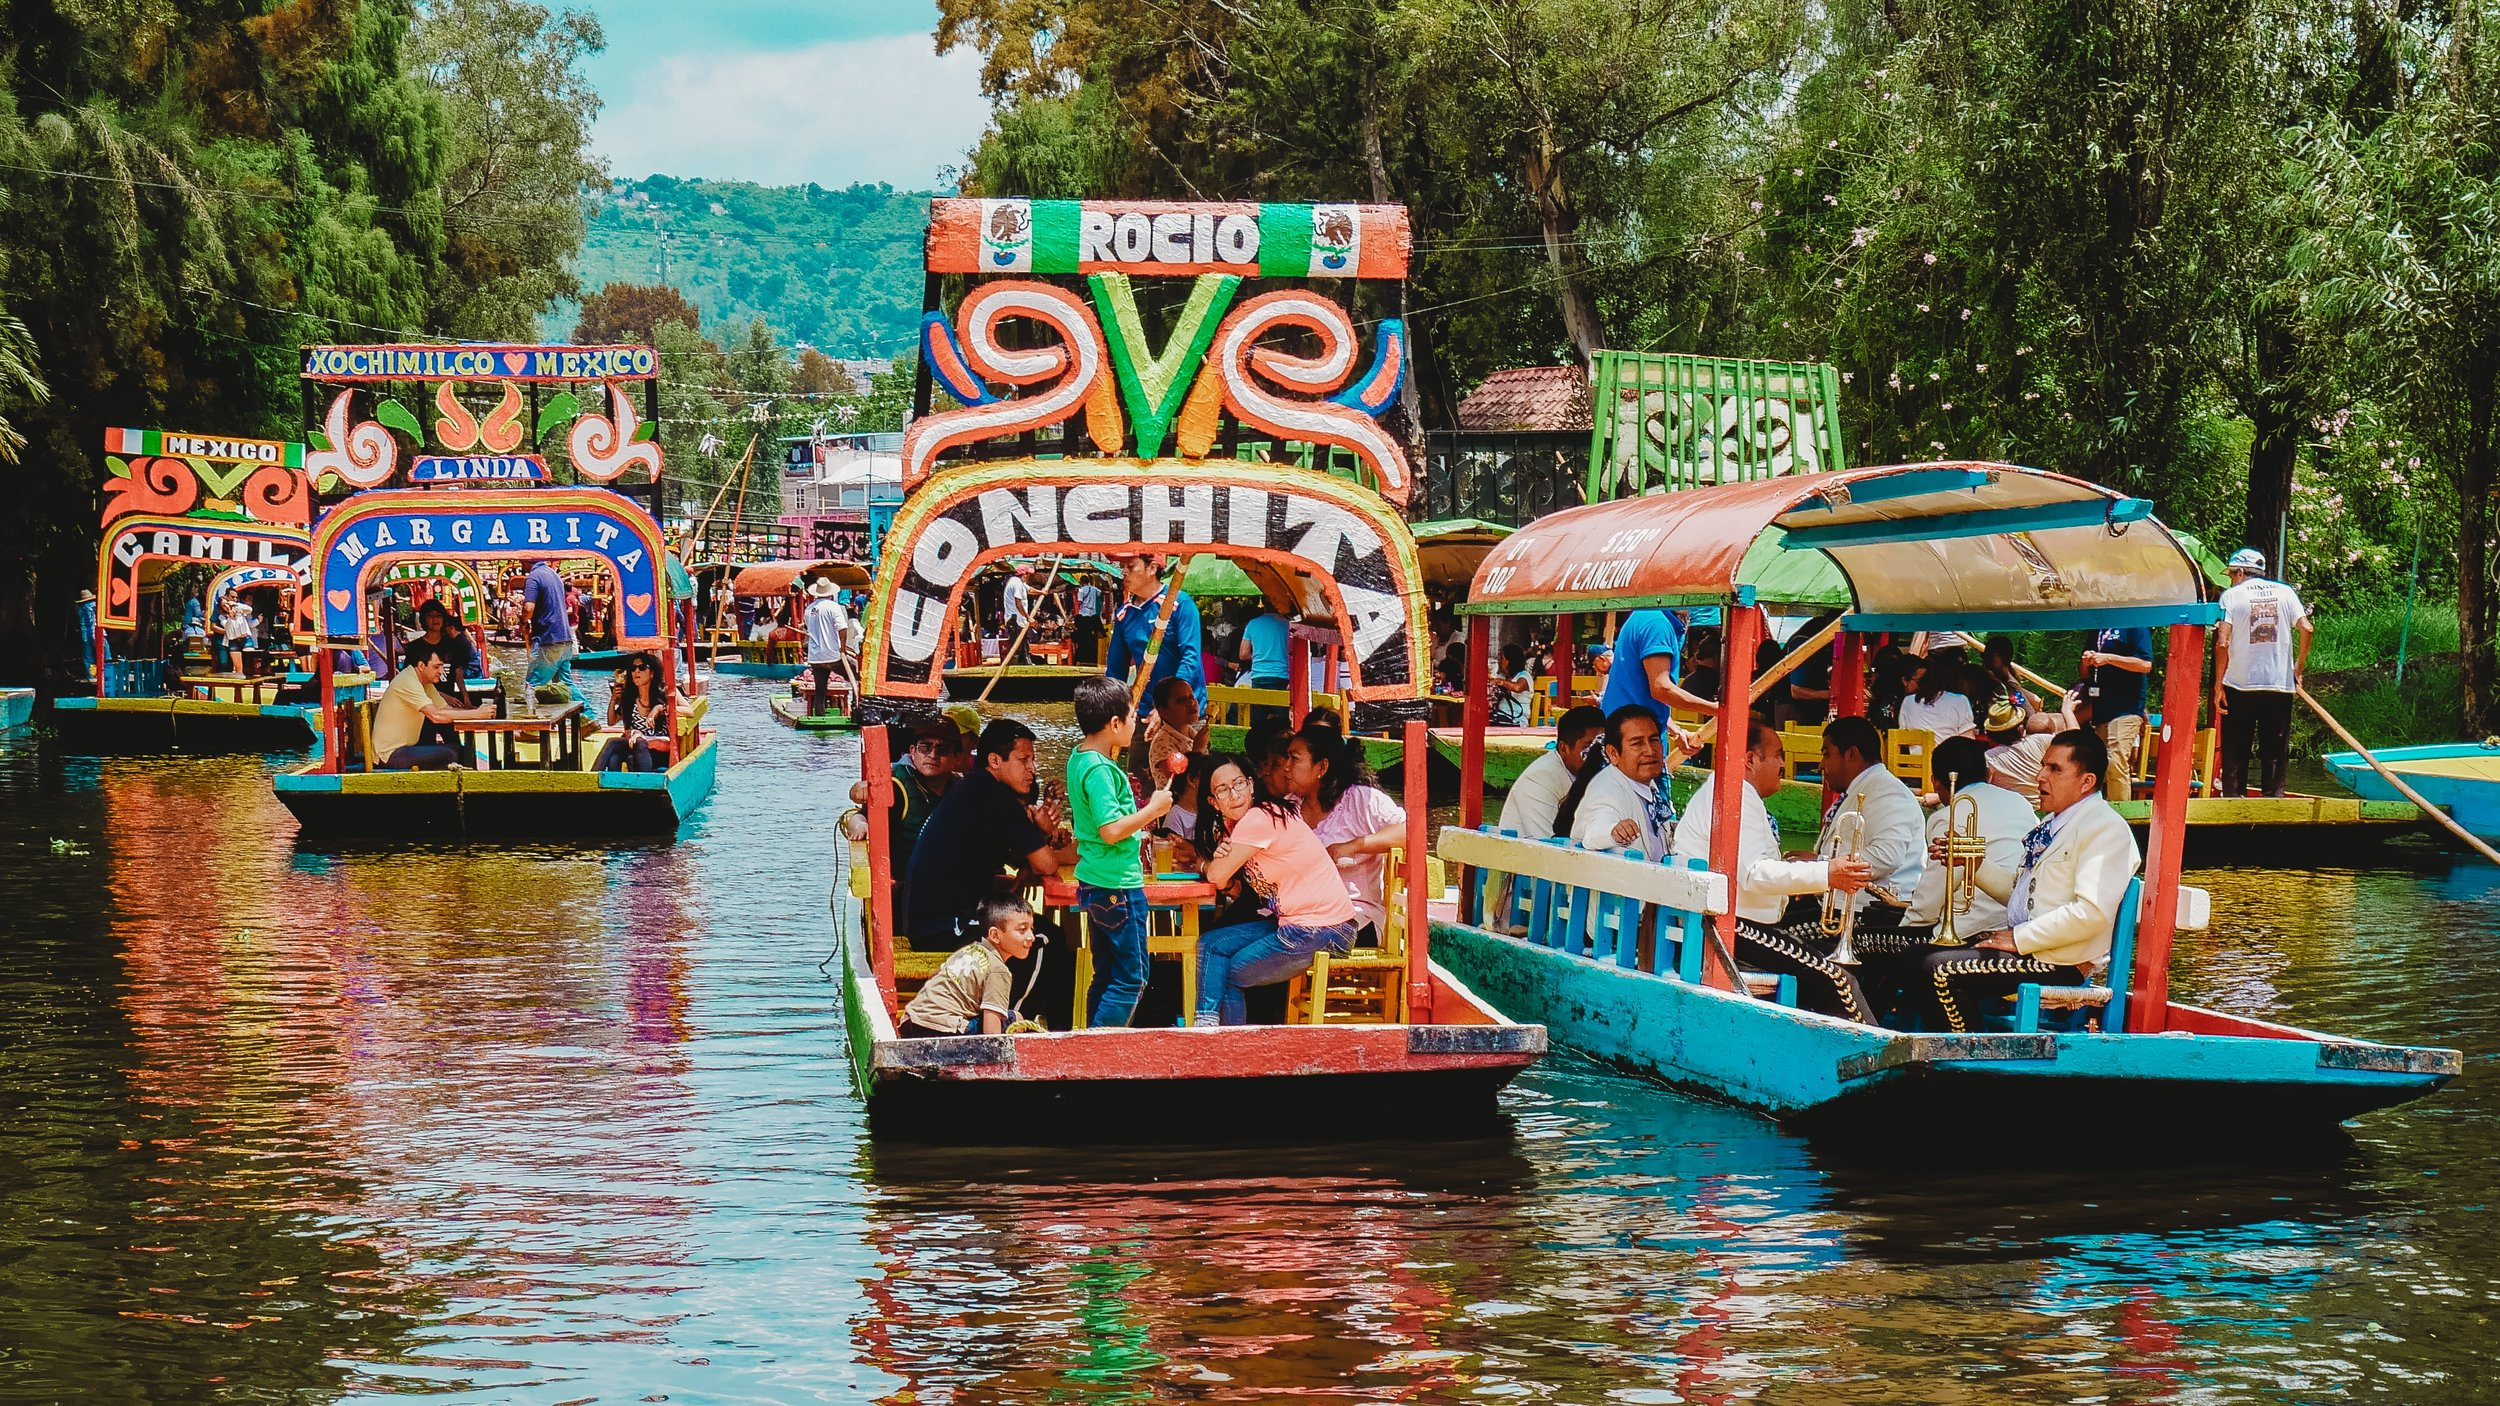 The boats - known as trajineras - will take you on a lazy float down the canals in the Xochimilco district of Mexico City